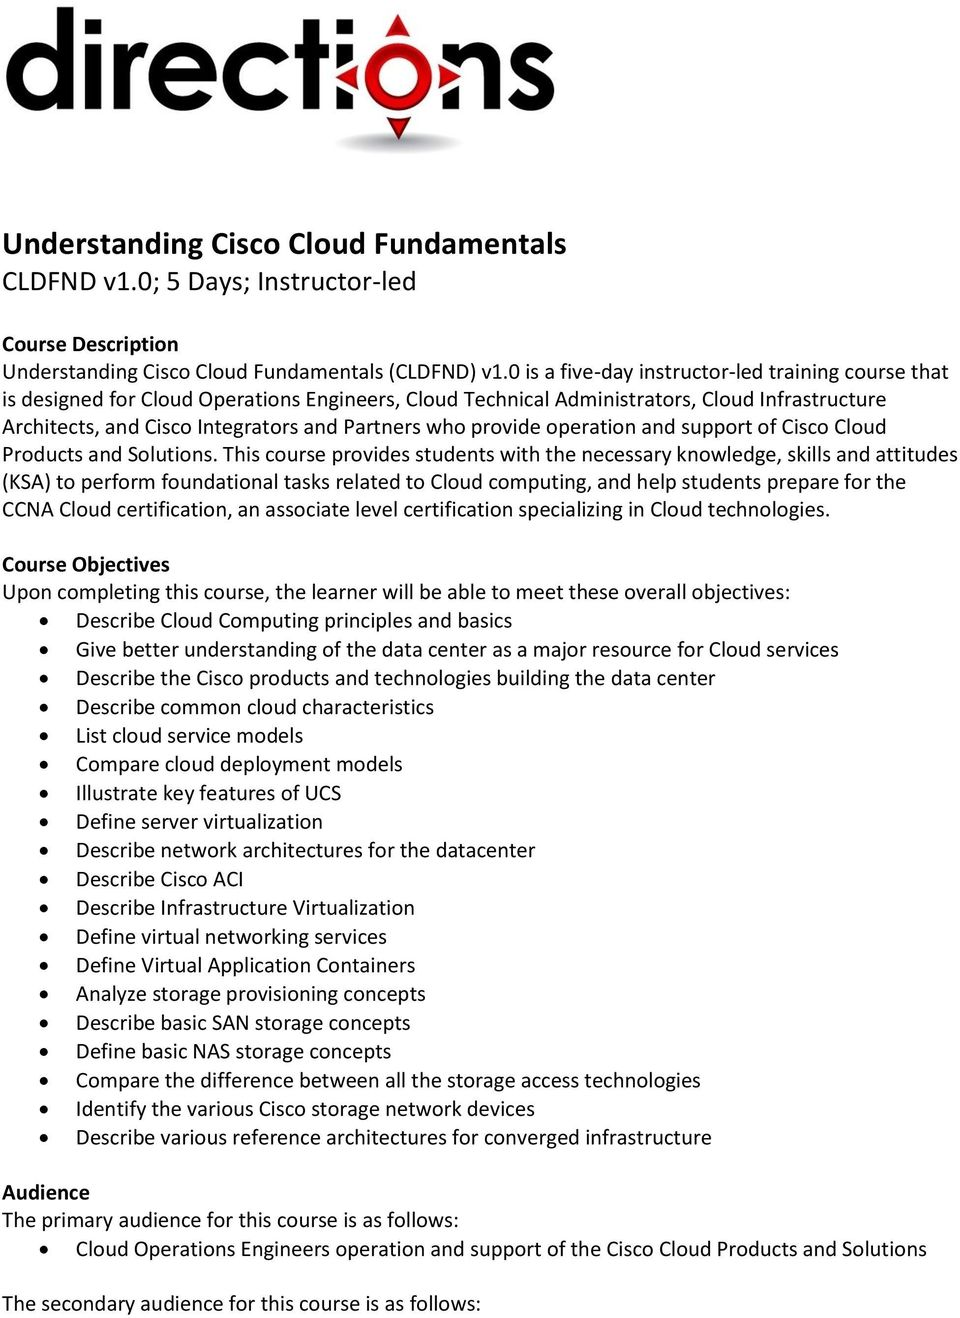 provide operation and support of Cisco Cloud Products and Solutions.